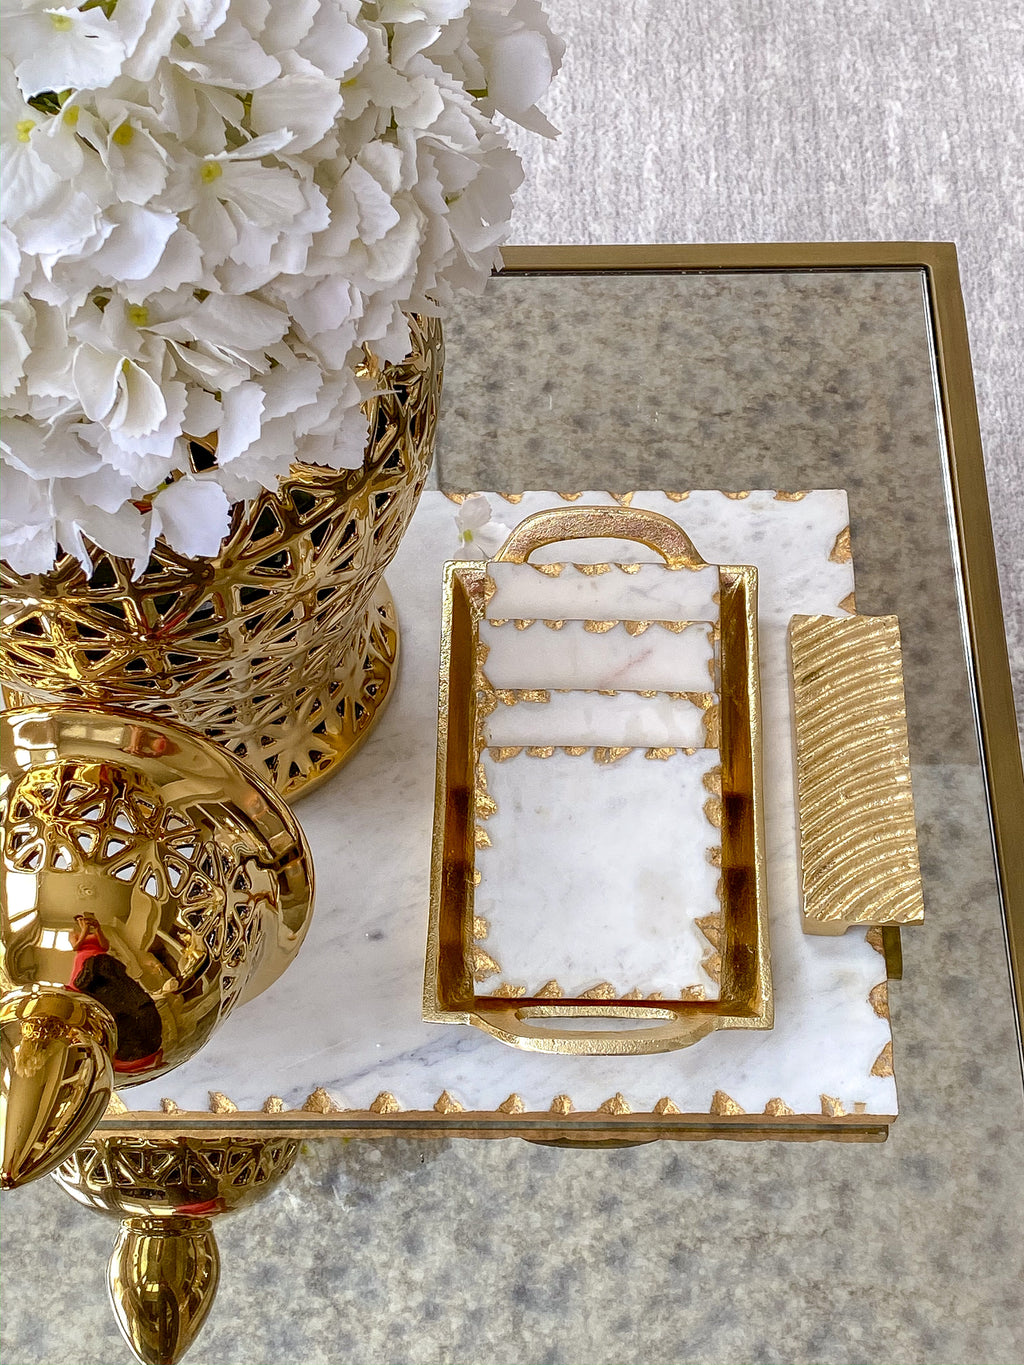 Marble Coasters w/ Gold Trim and Tray-Inspire Me! Home Decor